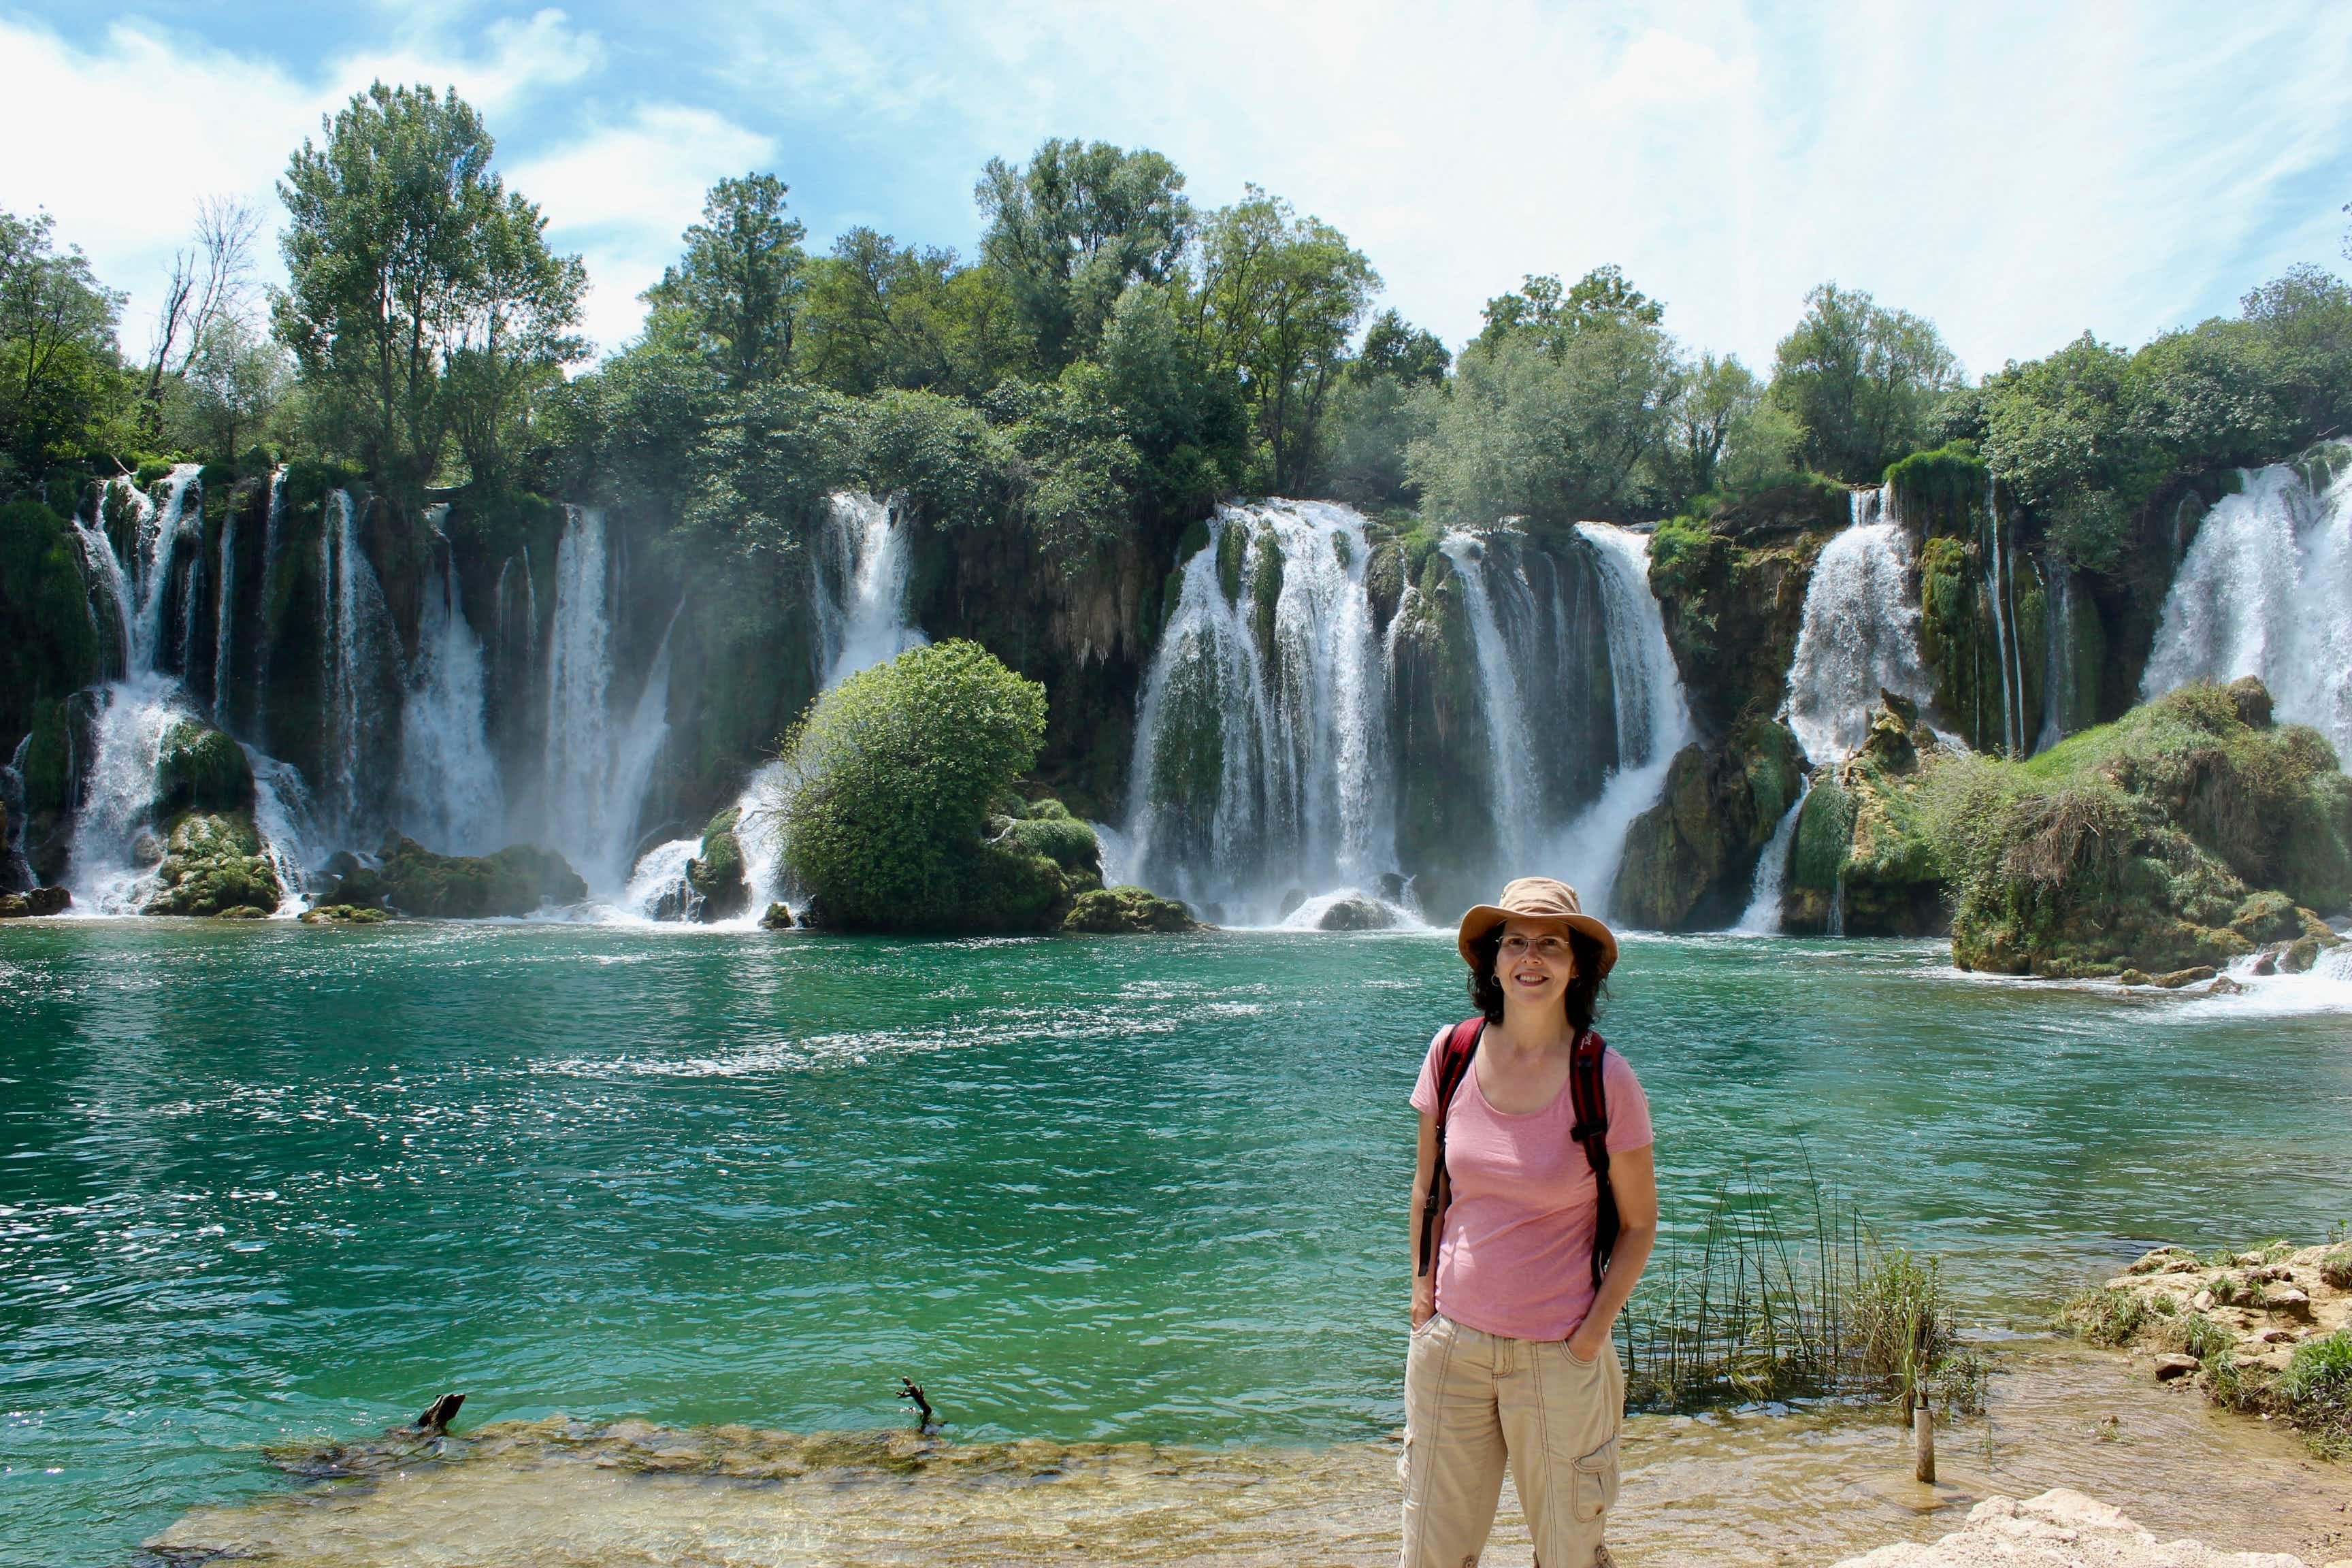 Marie-France Roy is a travel writer and blogger from Montréal © Courtesy of Big Travel Nut